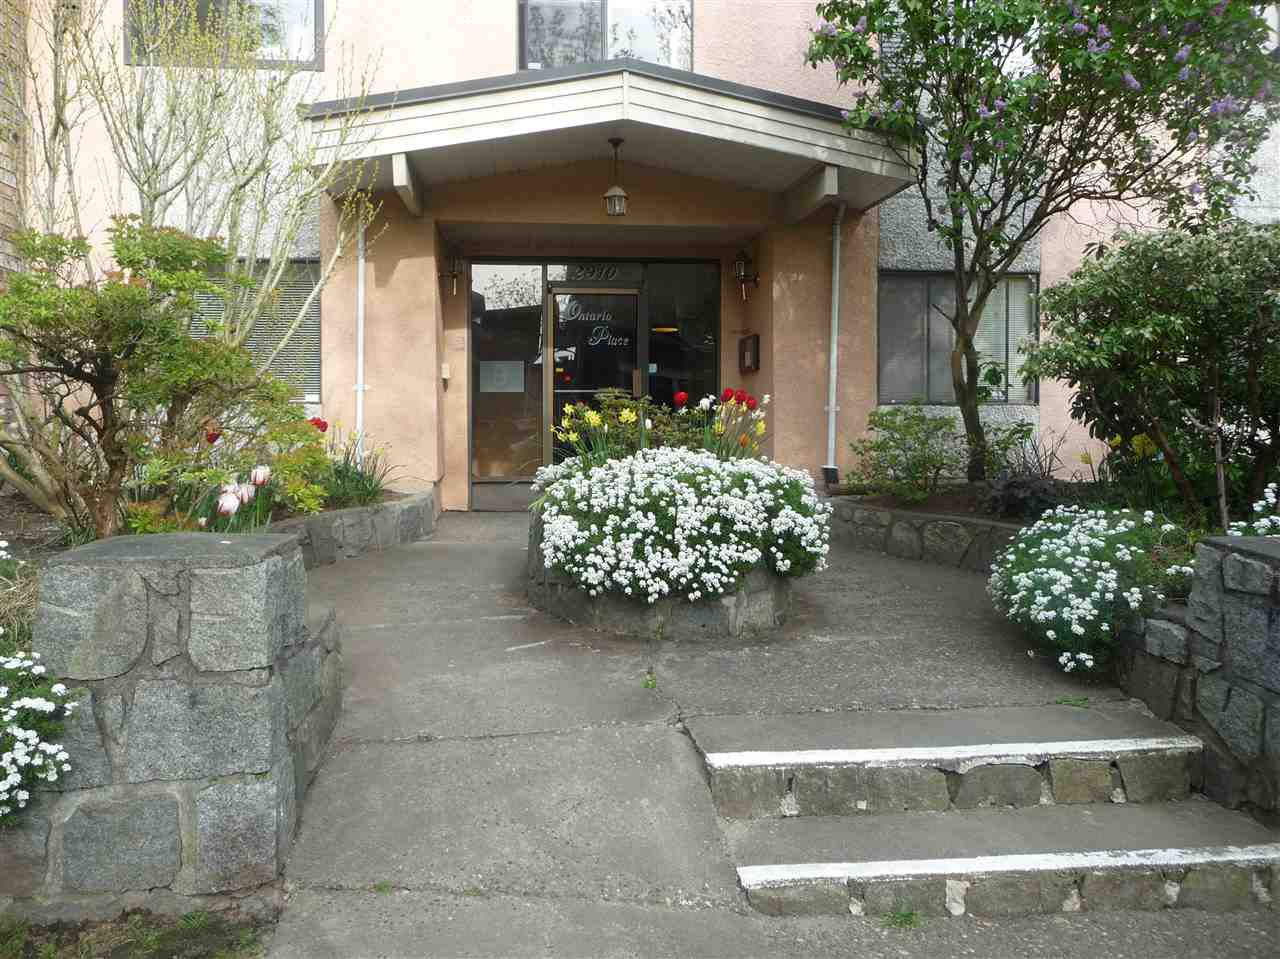 Main Photo: 103 2910 ONTARIO Street in Vancouver: Mount Pleasant VE Condo for sale (Vancouver East)  : MLS®# R2058838